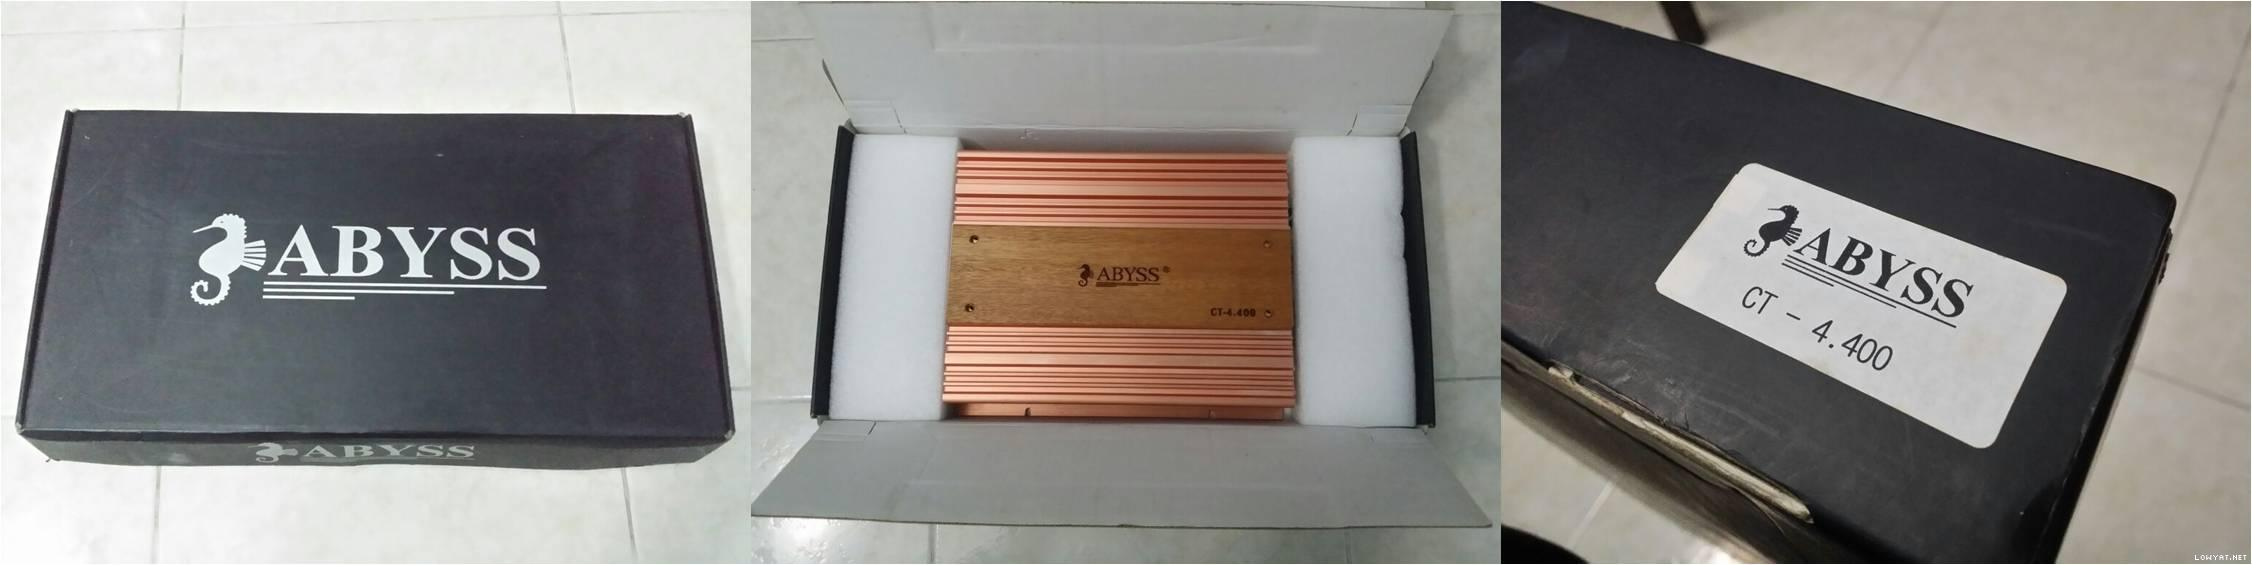 """[WTS] Abyss CT4.400 4-Ch Amplifier """"Dynamic SQ Amp (4 x 90W RMS)"""" Post-237488-1413338348"""